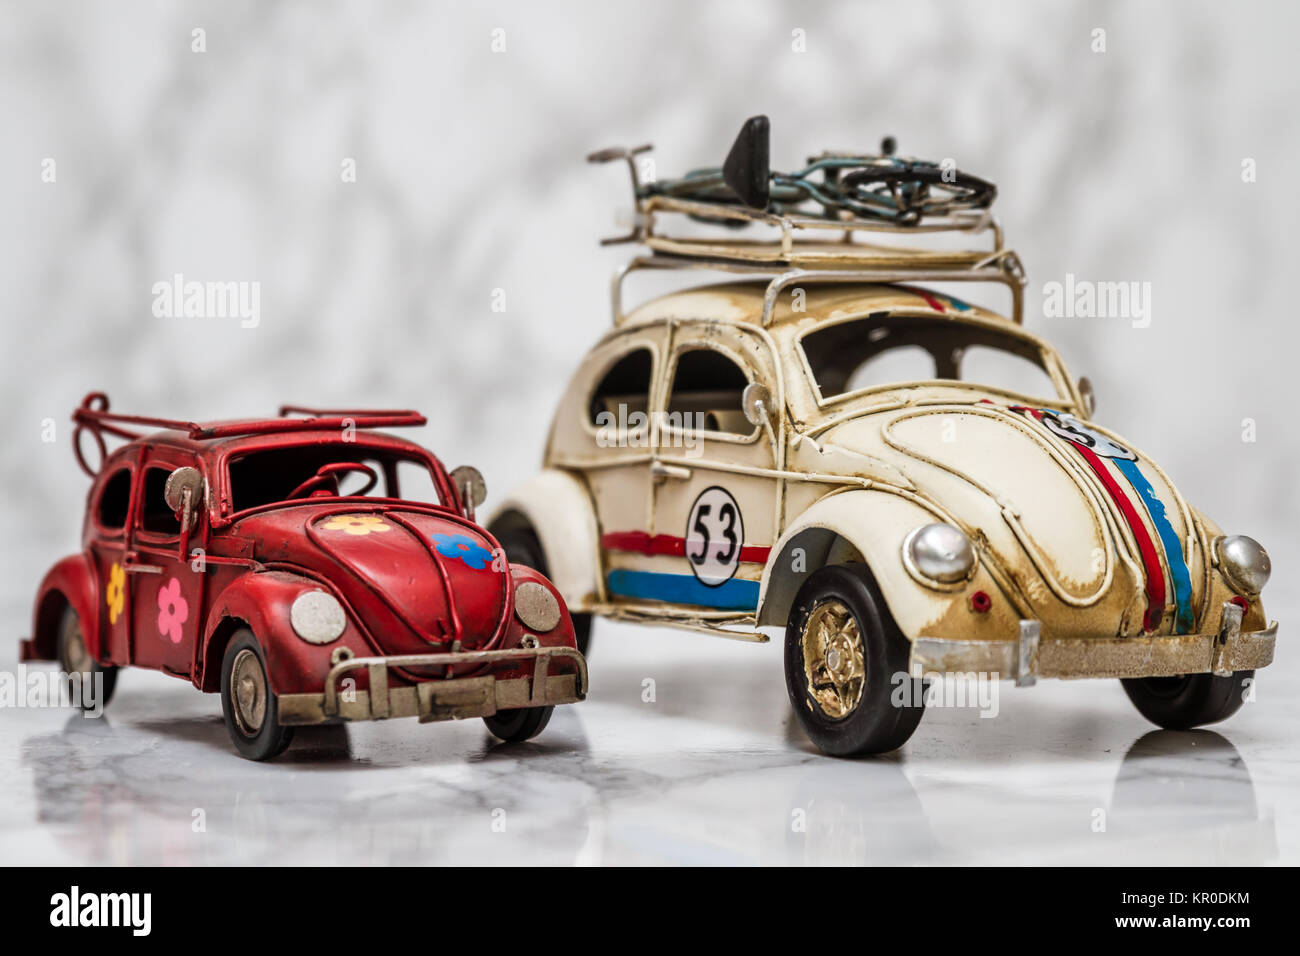 Classic Mini Car Models On White Stock Photo 169041144 Alamy